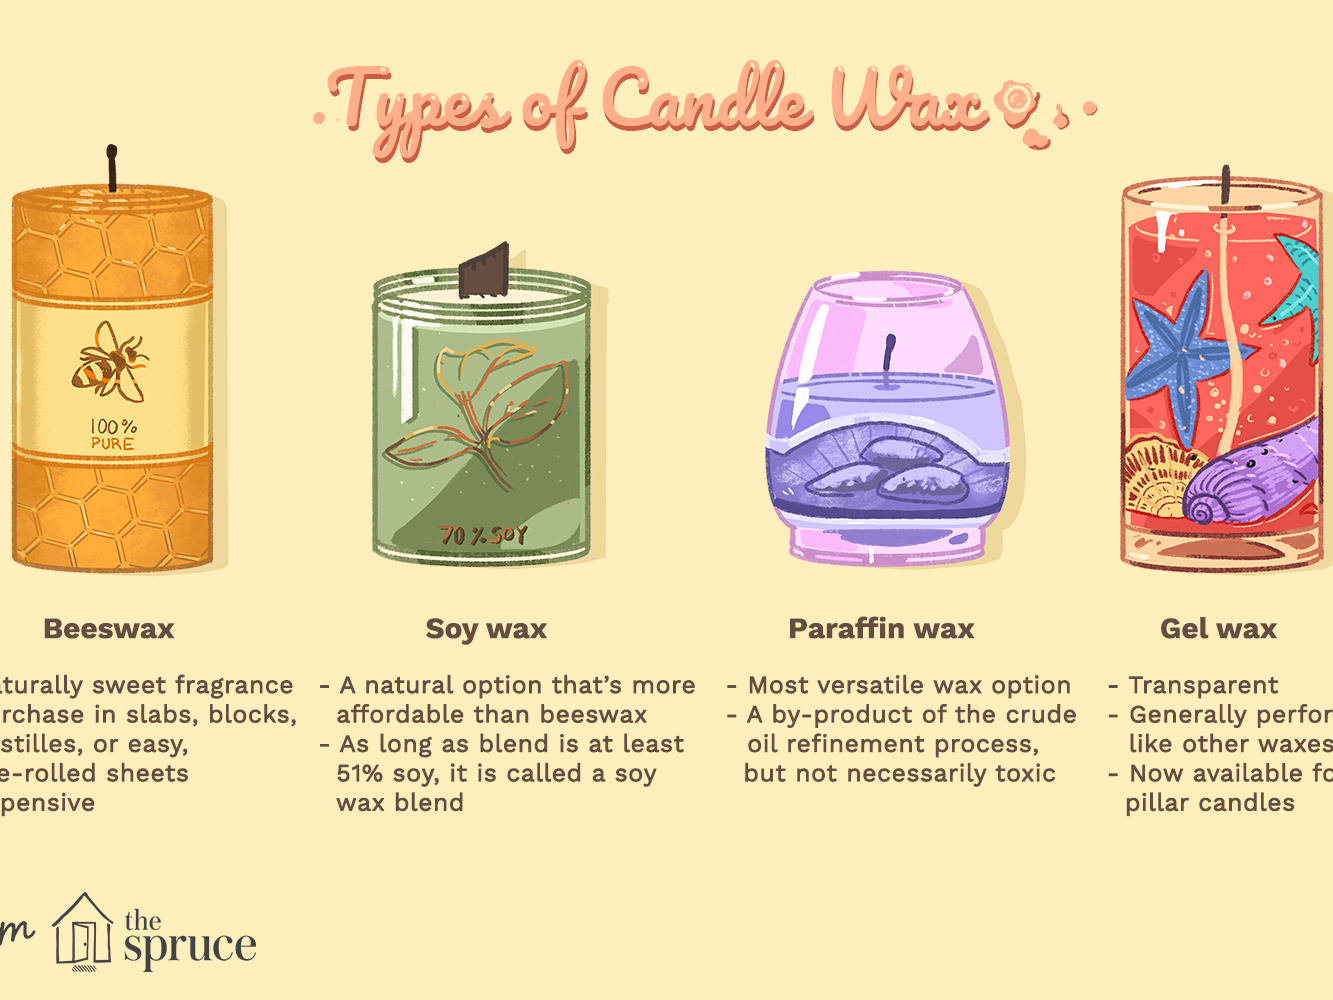 Different Waxes for Candle Making